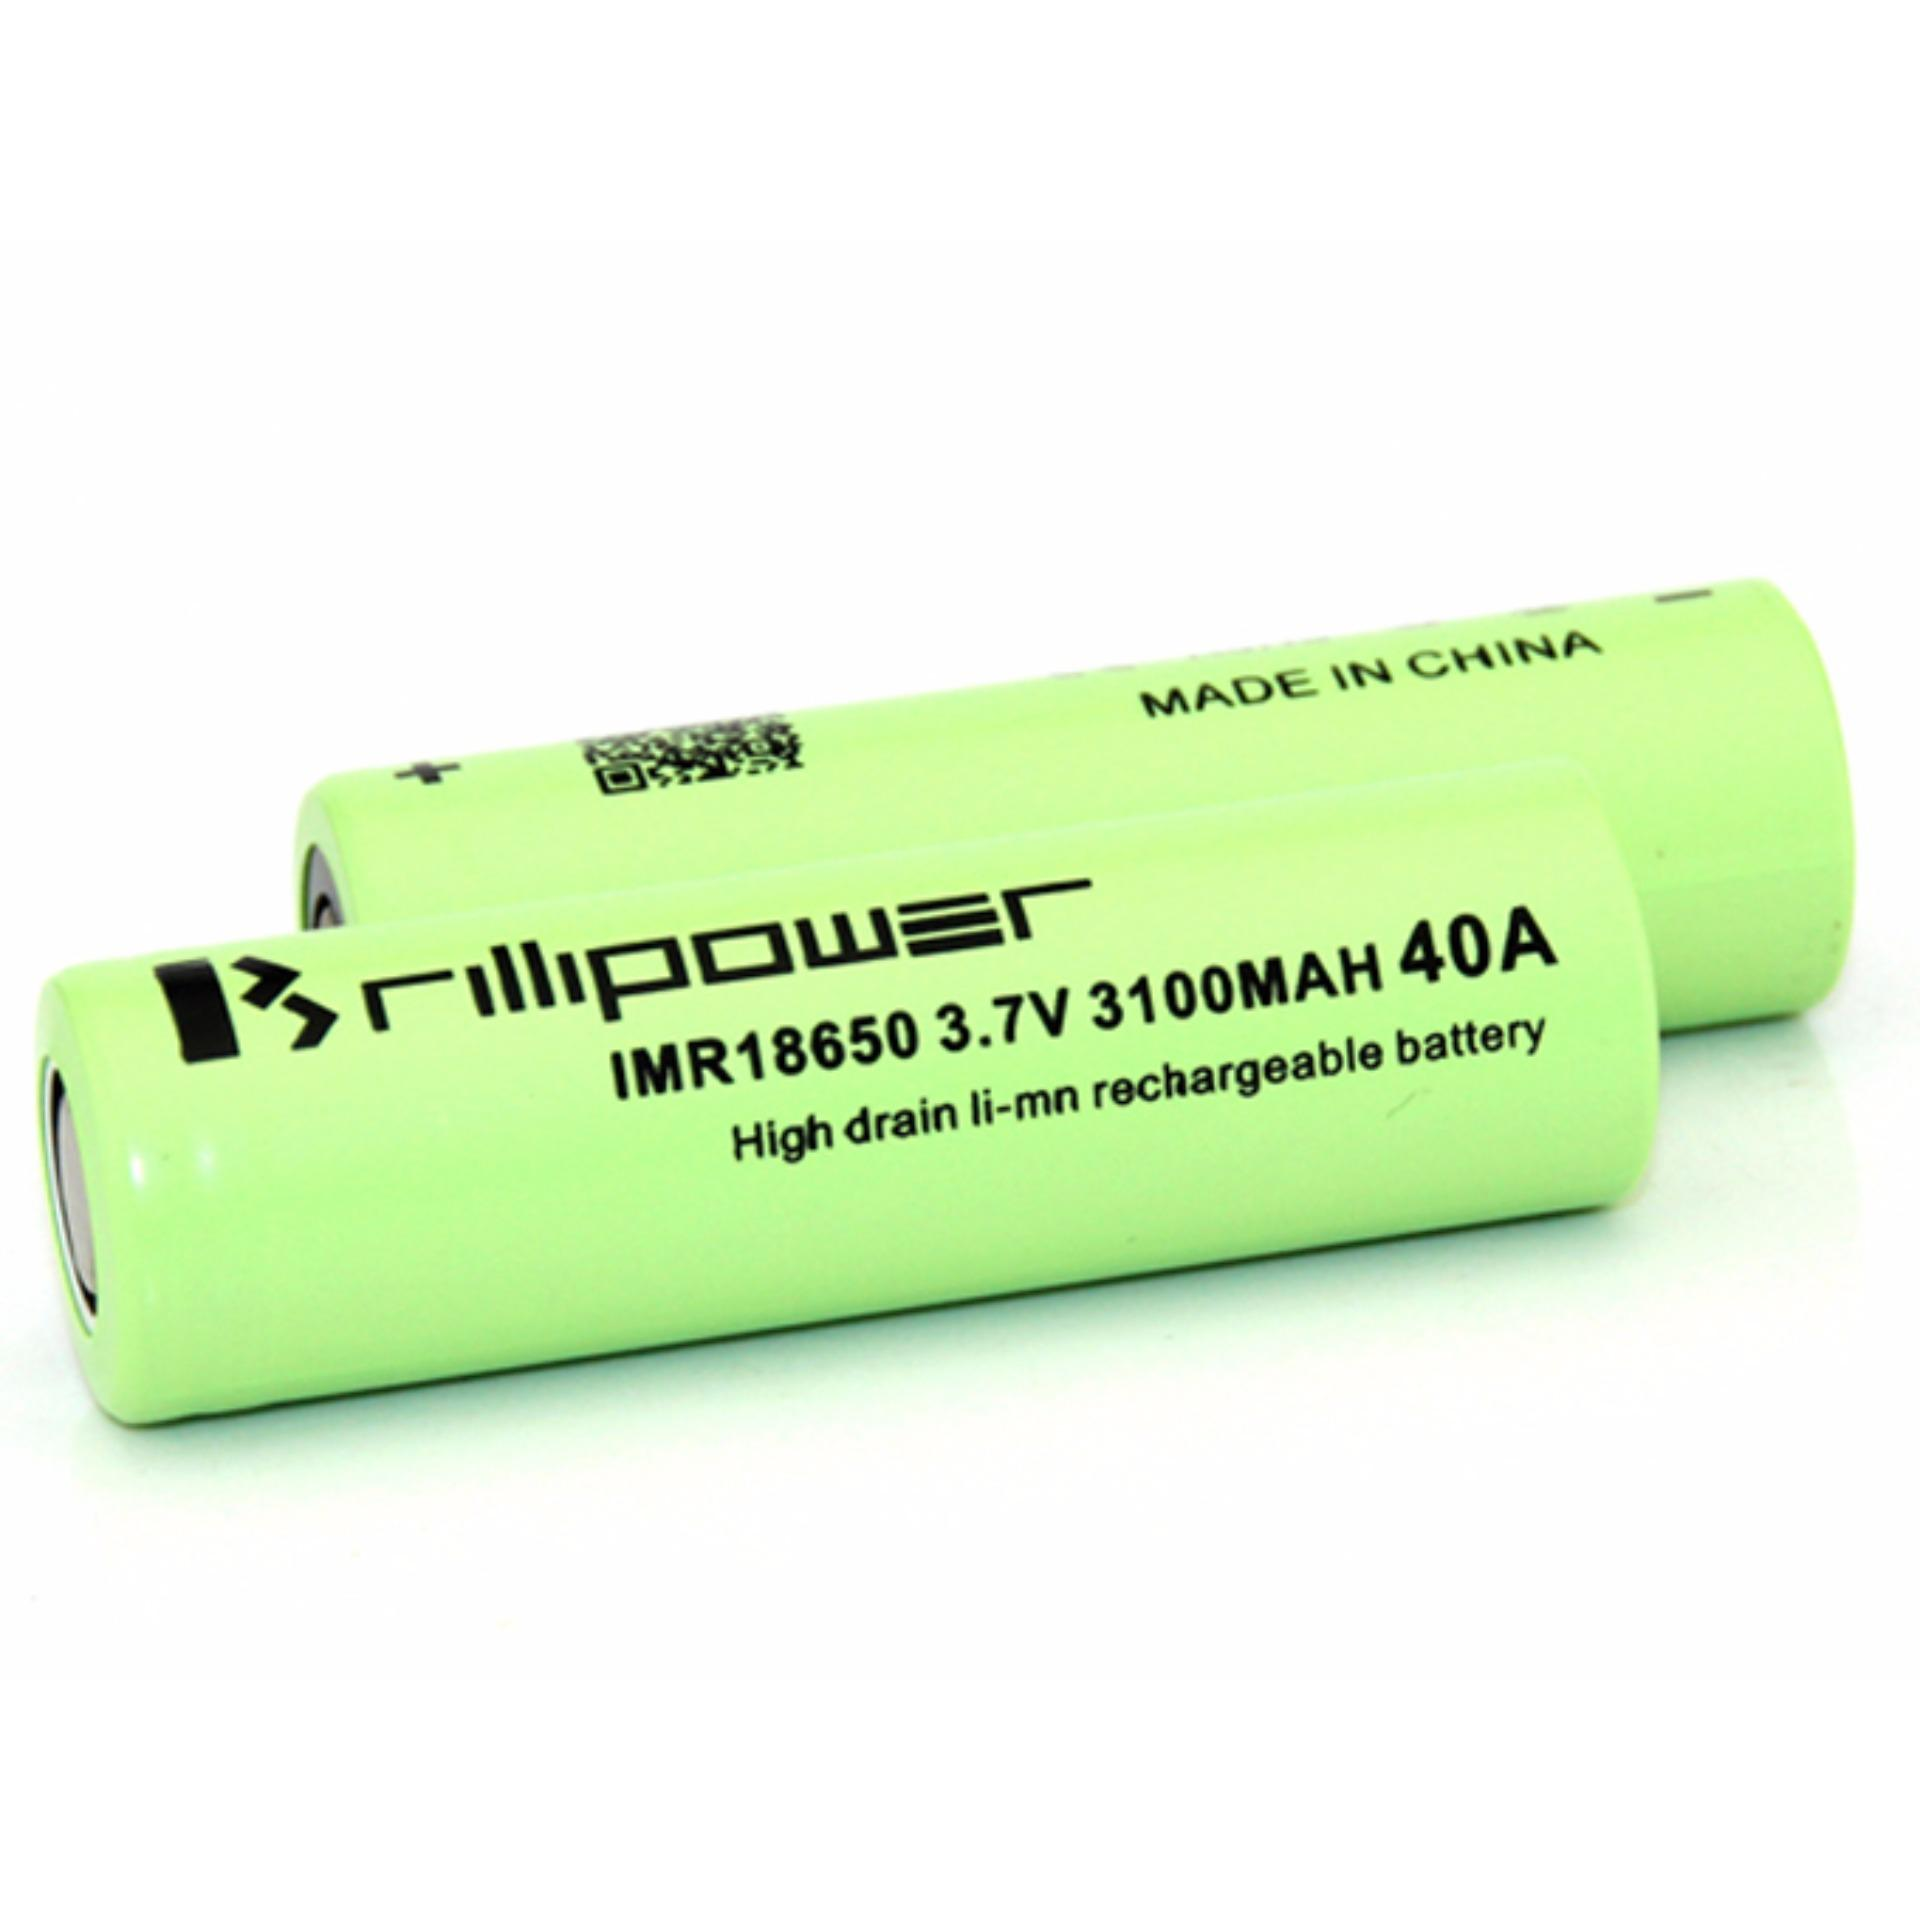 ... 3000 Mah 37v 40a Baterai Rokok Elektrik High Drain Rechargeable Gratis Battery Awt 18650; Page - 2. Premium Battery Brillipower 40A 3100mAh 18650 ...